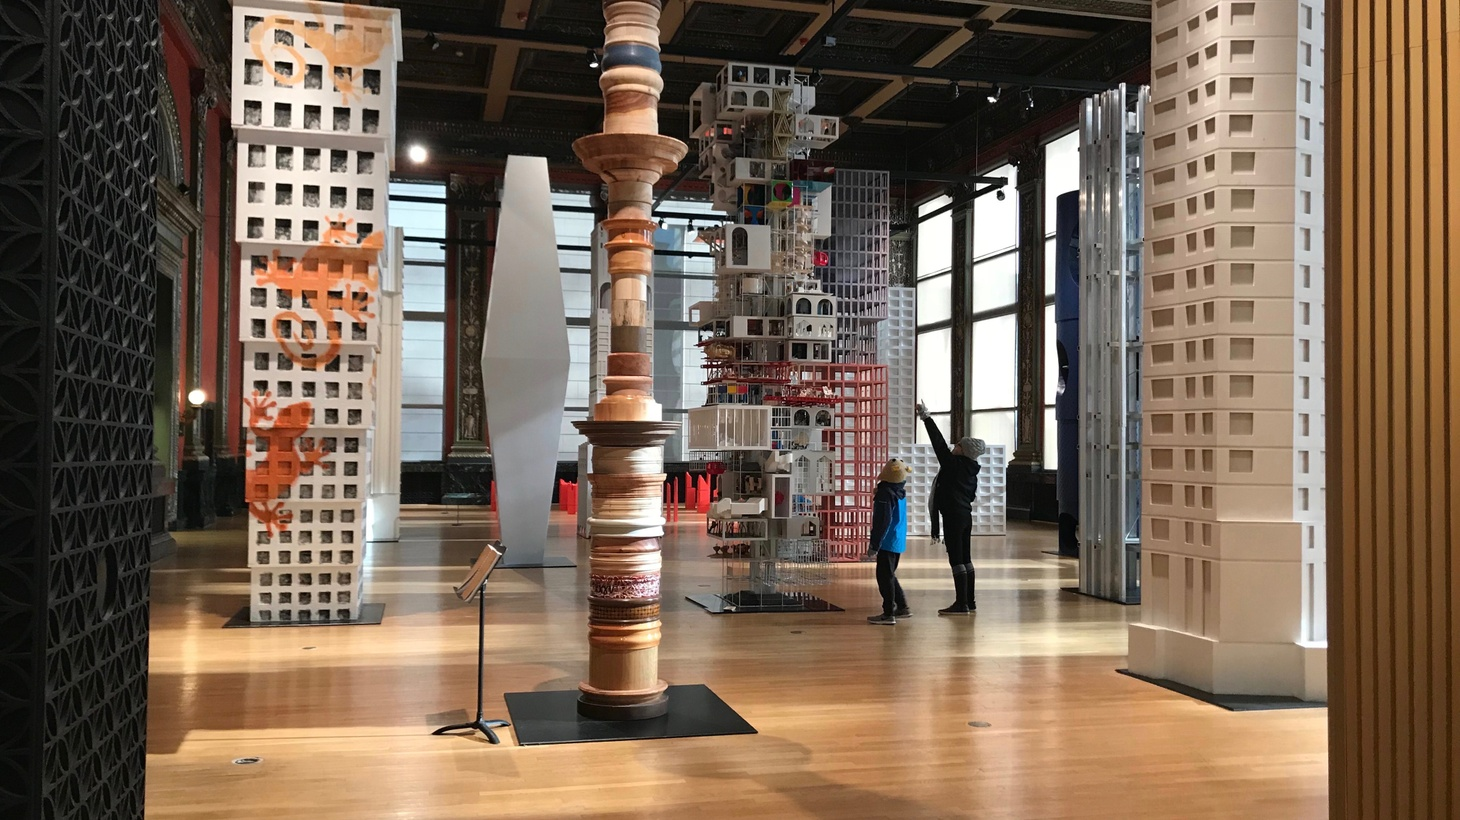 """There's been a trend of so-called """"selfie museums"""" in LA, with """"made-for-Instagram"""" sets designed for taking flattering self-portraits. So how does selfie culture jibe with """"high art""""? Meanwhile, Los Angeles-based curators bring new architectural ideas to the Windy City. But are they """"boring""""? And, one of Apple's first """"town squares"""" opens in Chicago too."""